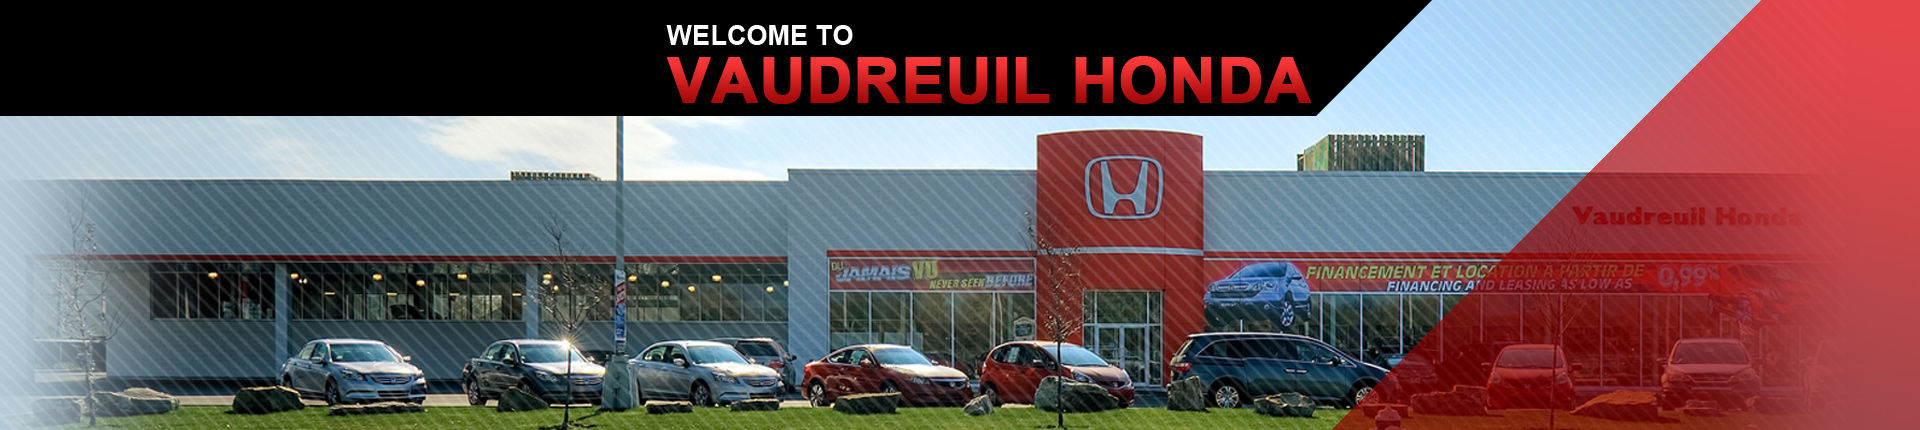 Welcome to Vaudreuil Honda